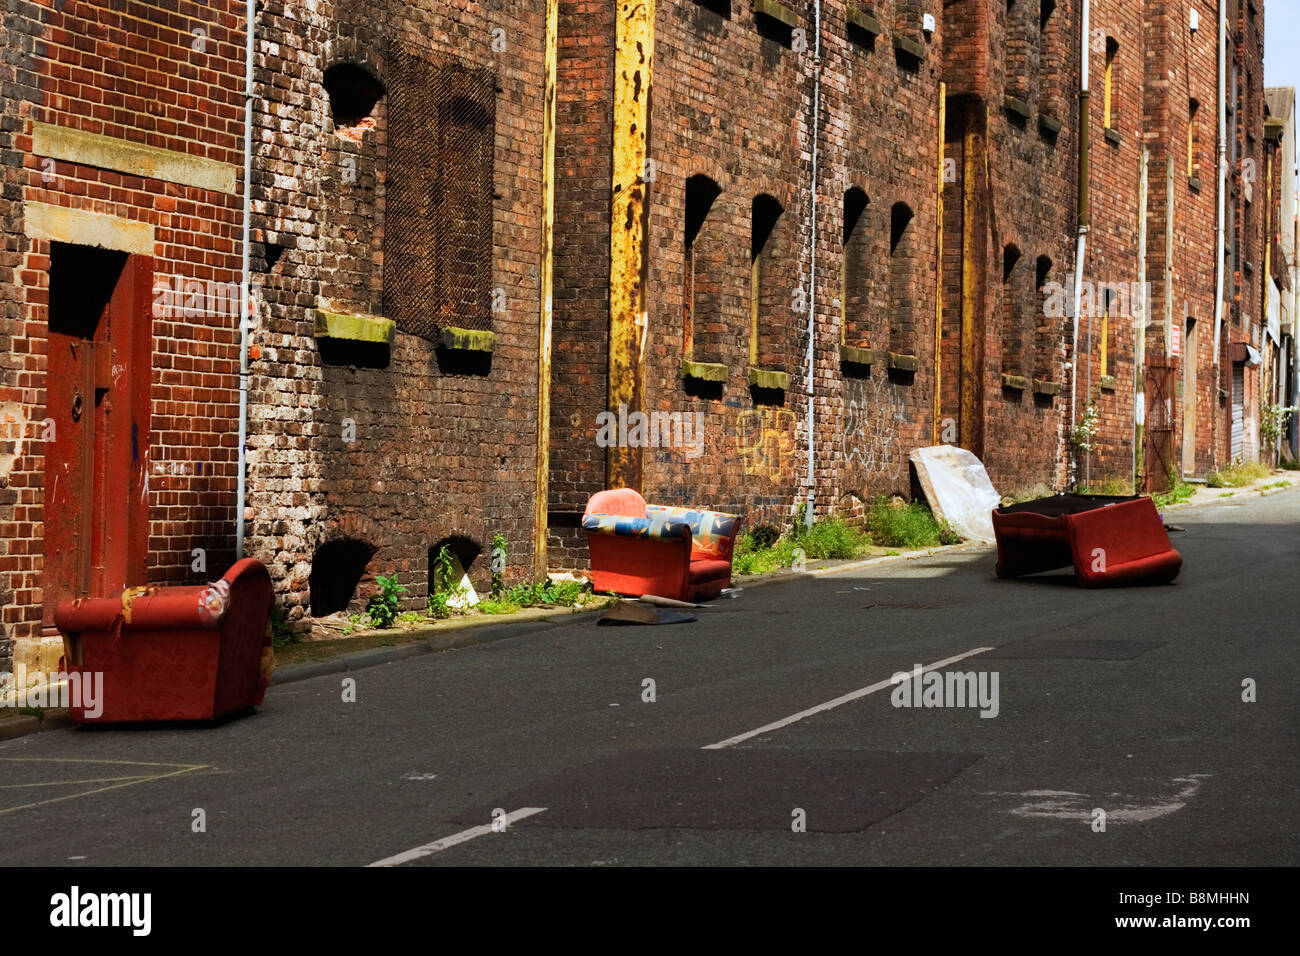 Example of the fly tipping problem, old settees dumped in a Liverpool street - Stock Image